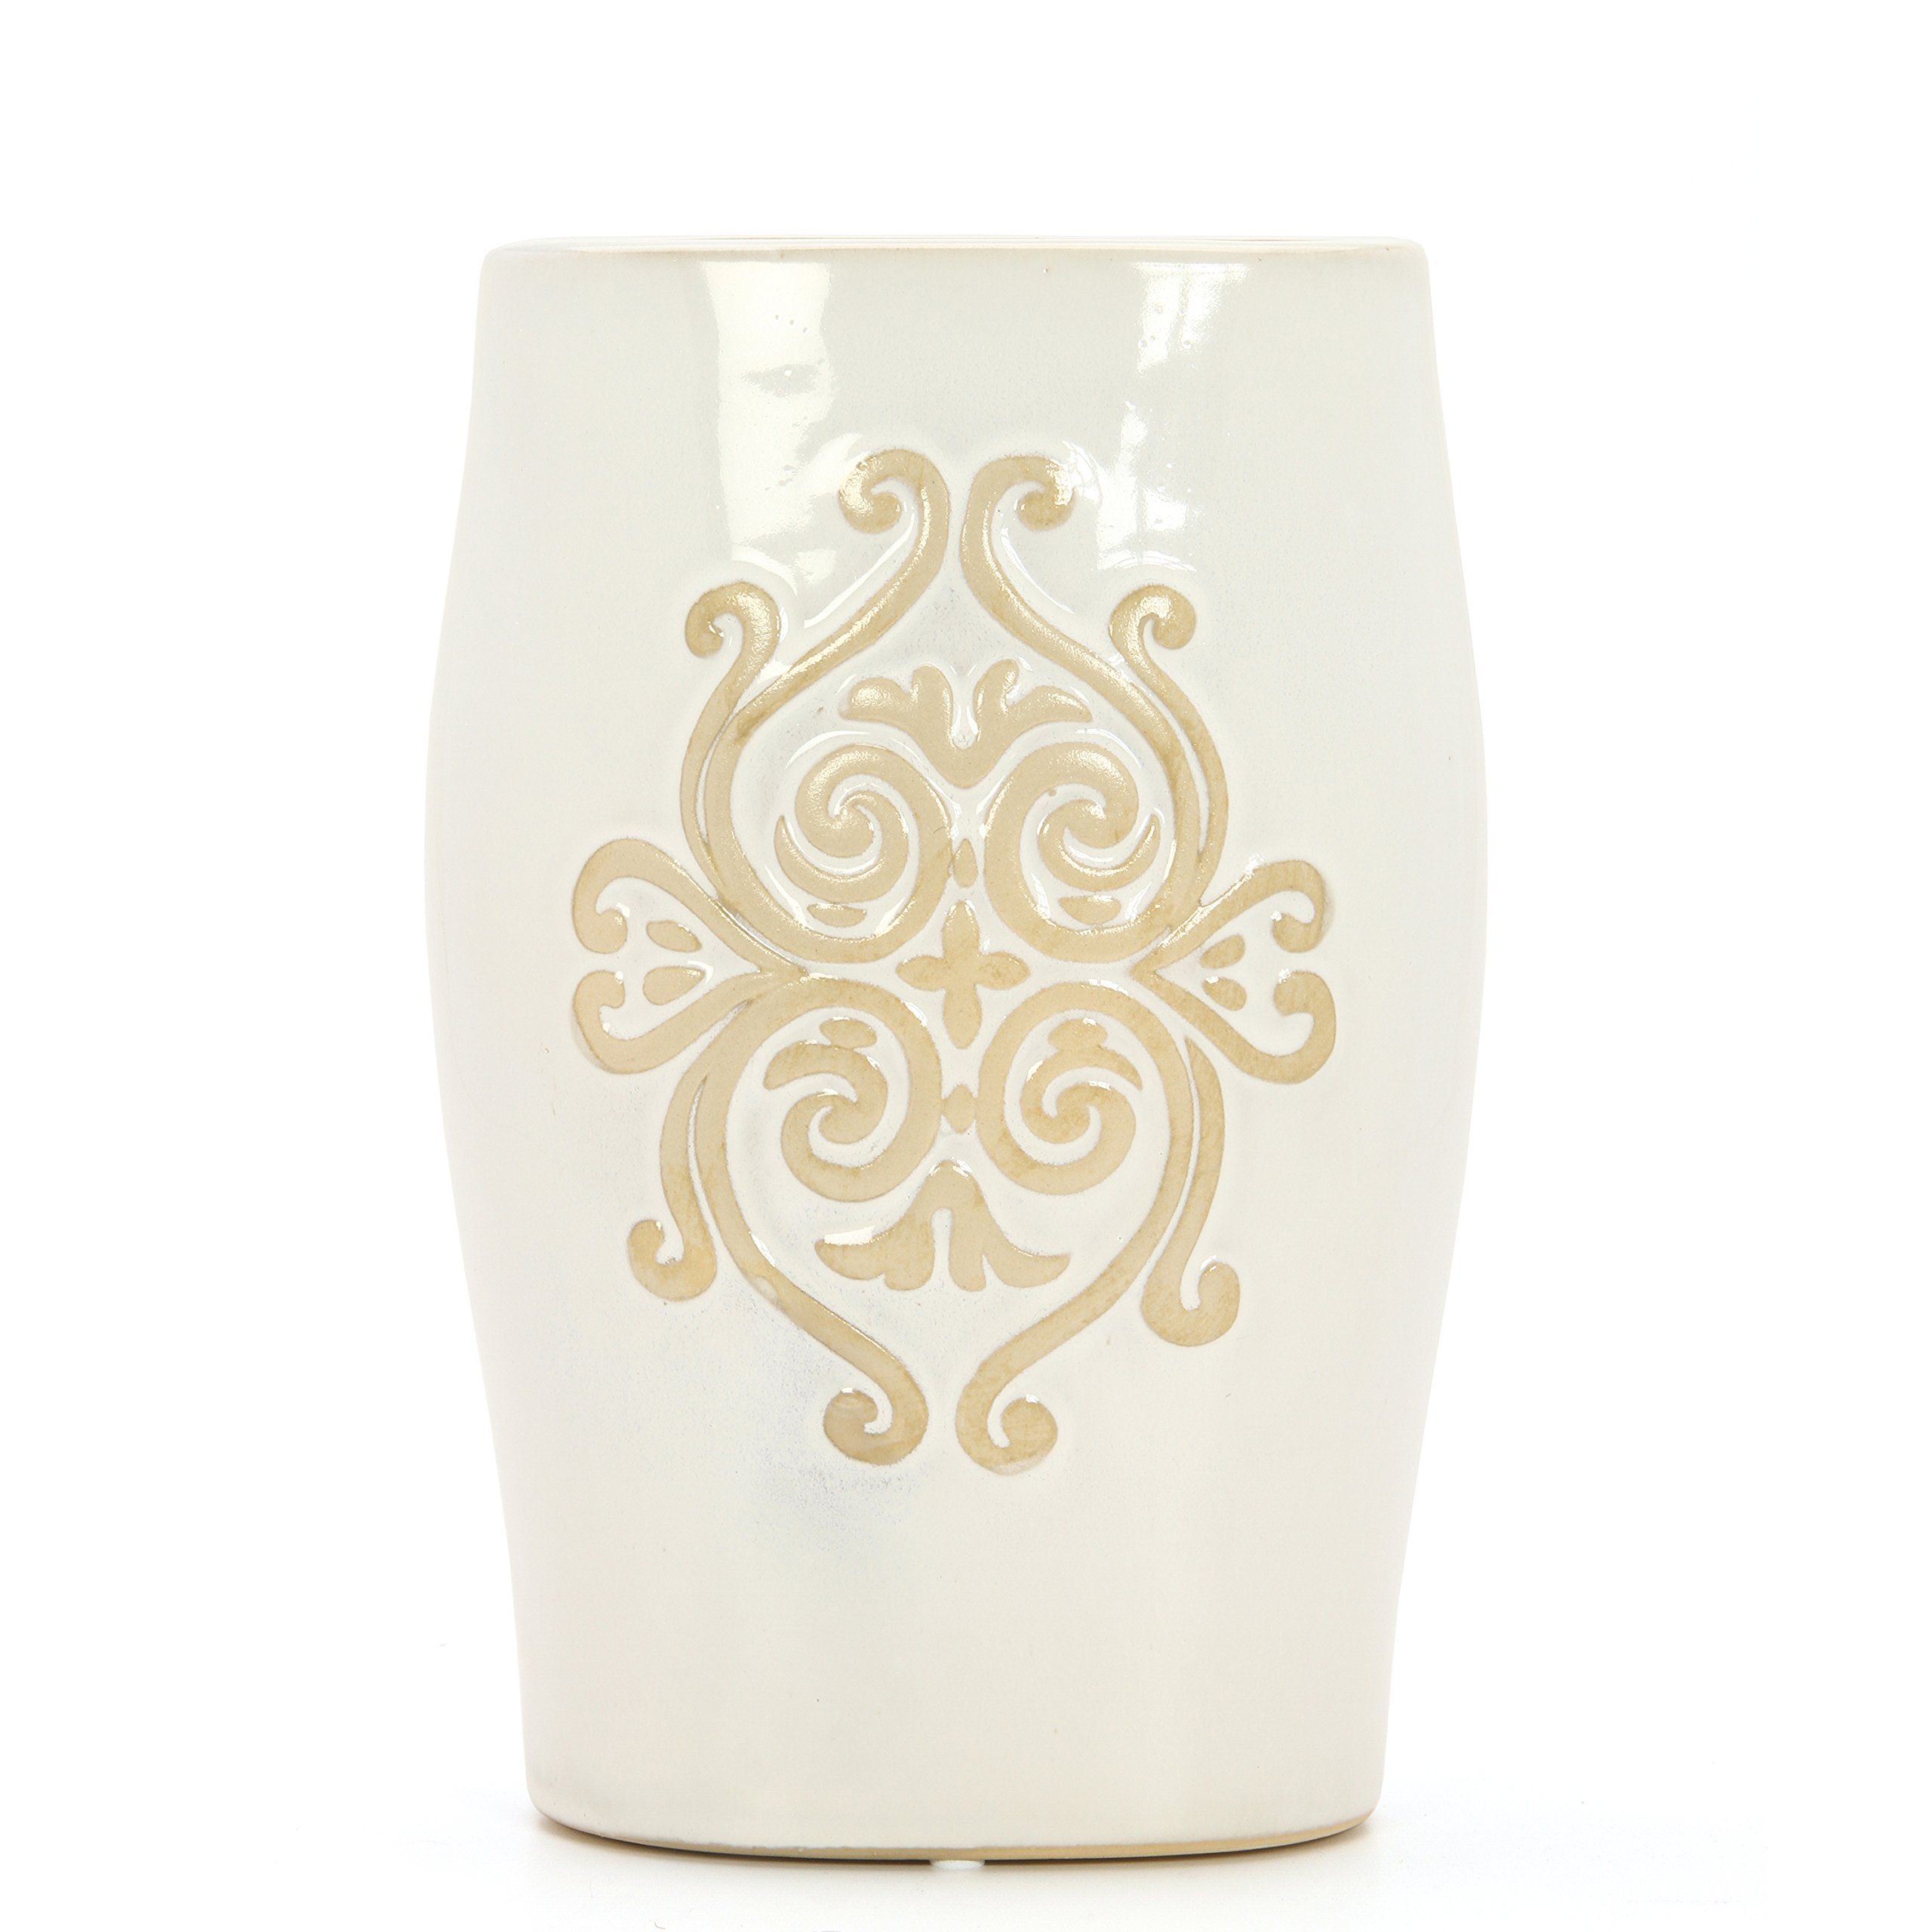 Hosley 9.25'' High, Tall Ceramic Oval Floor Vase with Scroll Design. Ideal for Flowers, Party, Weddings, Gifts, Reiki, Spa, Candle Garden setting